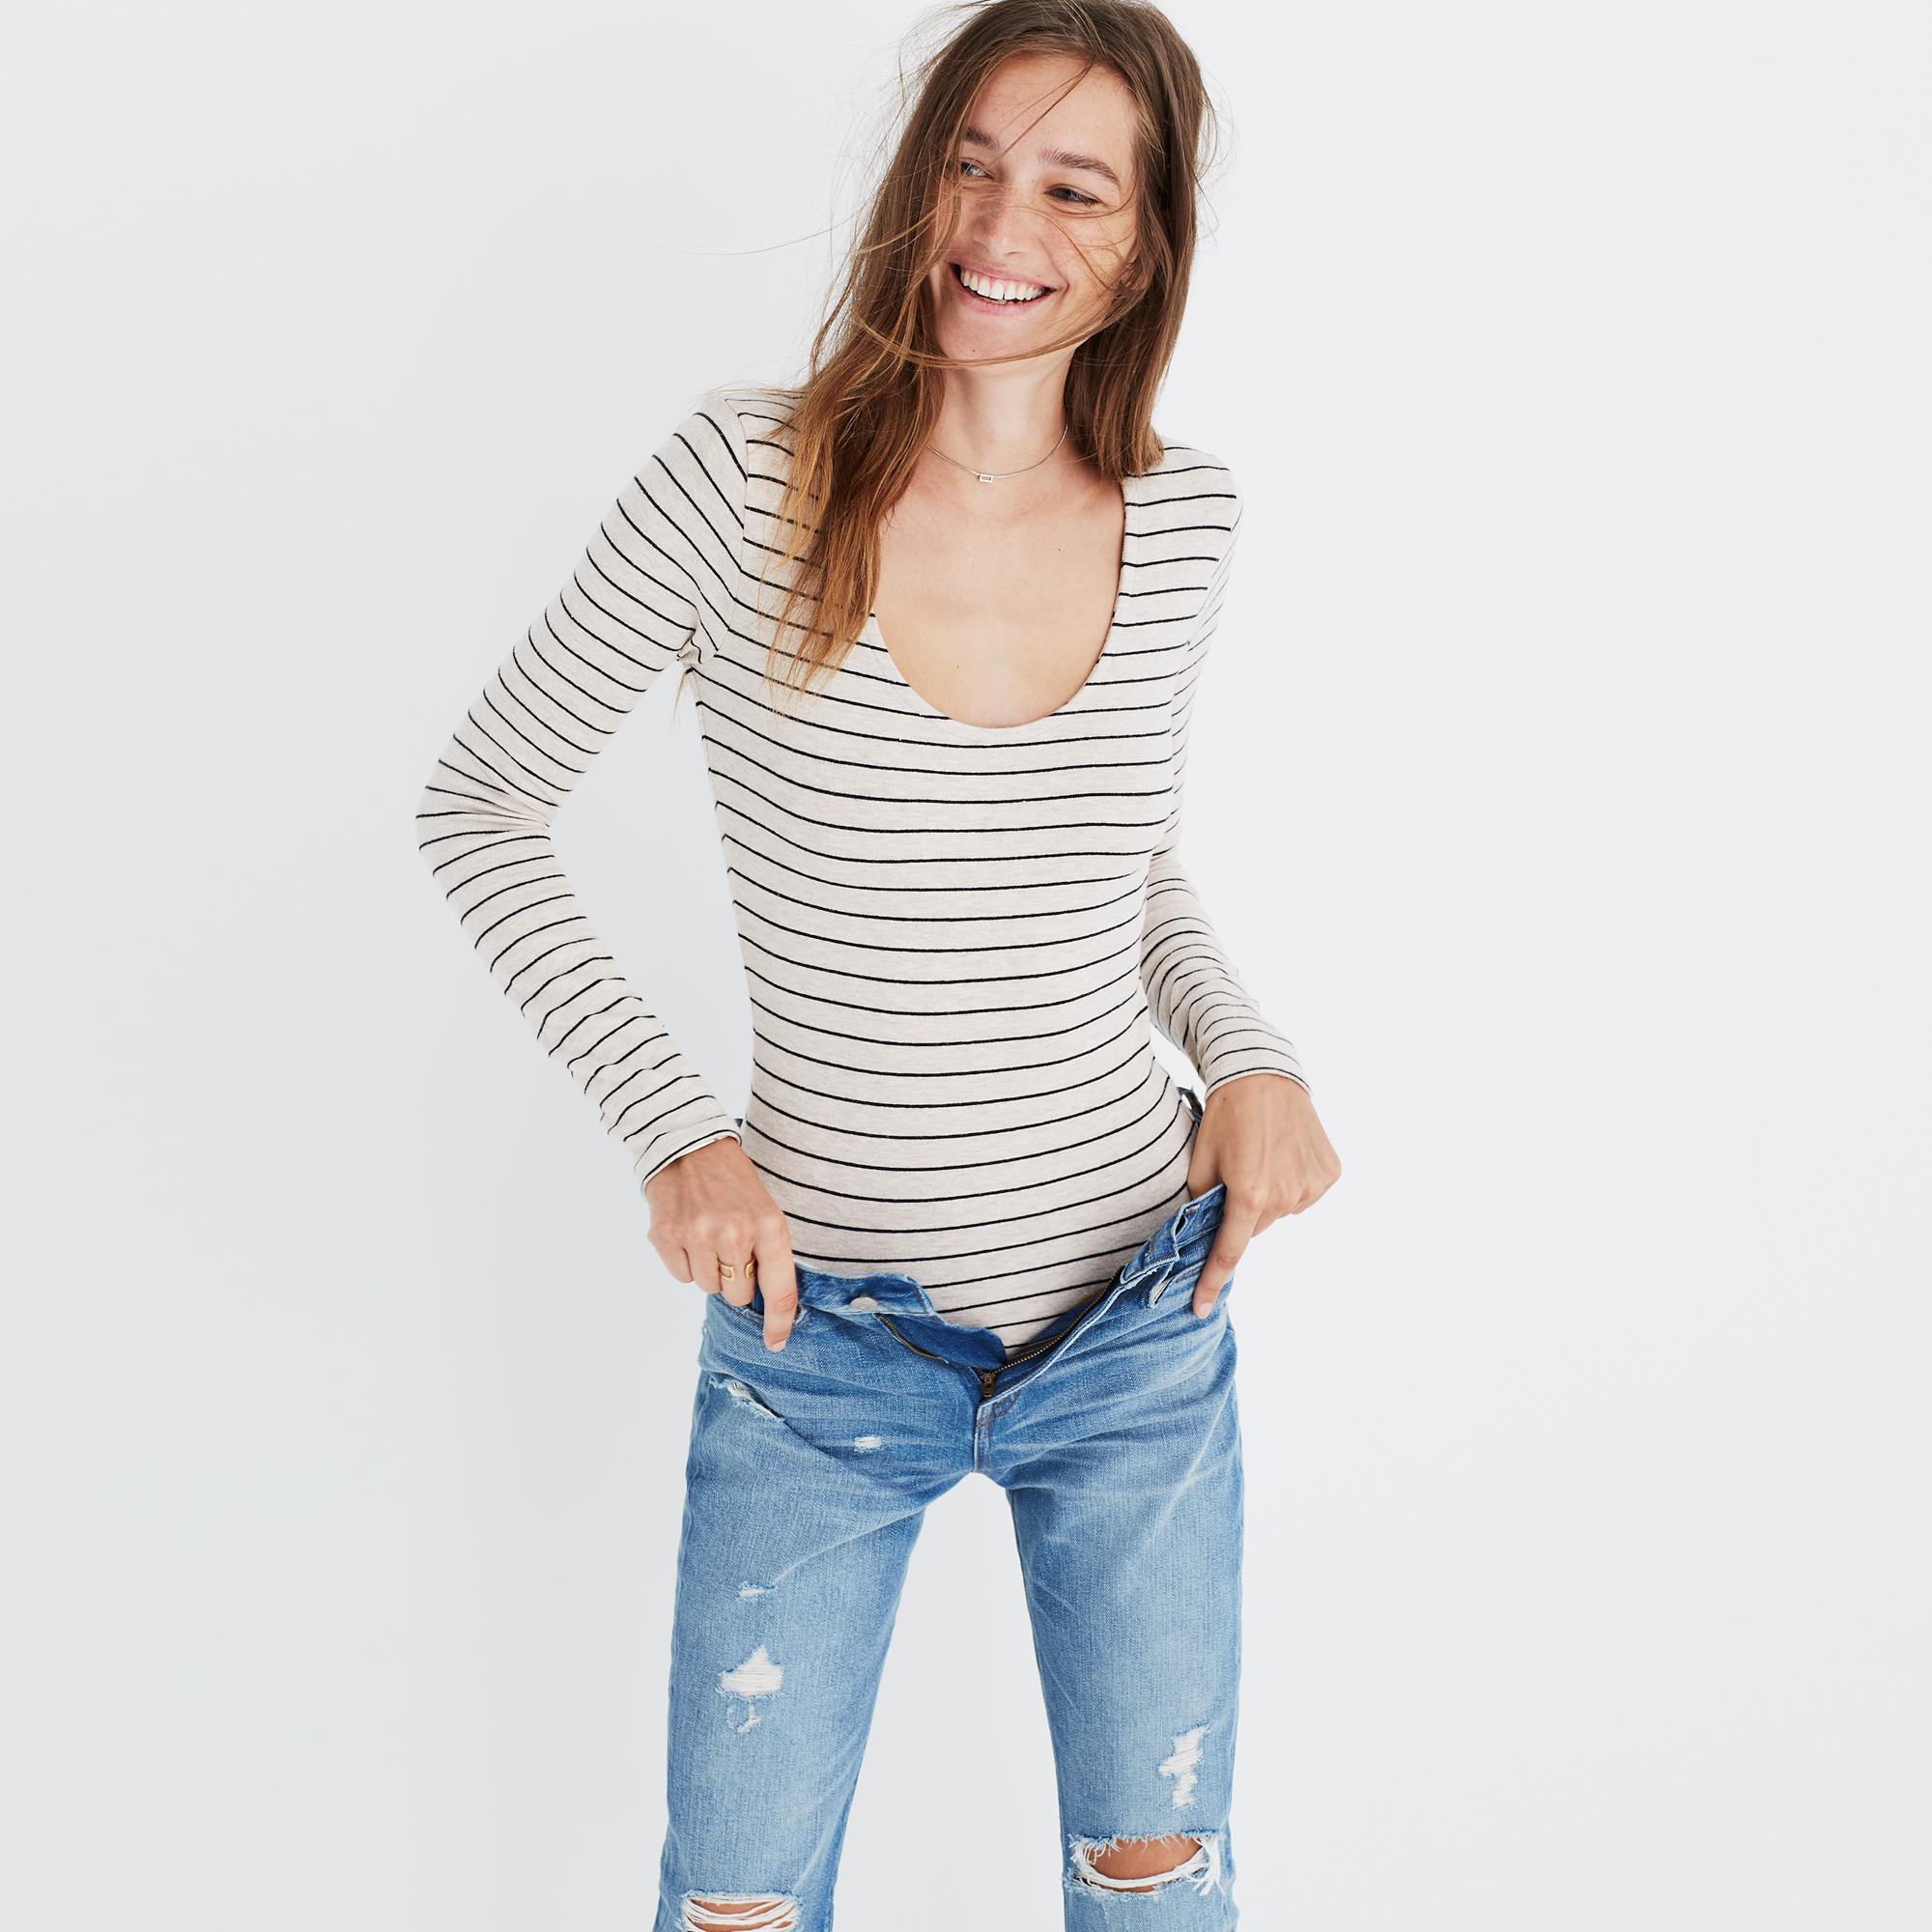 Madewell Song Scoop Bodysuit in Pierre Stripe - The Best Bodysuits